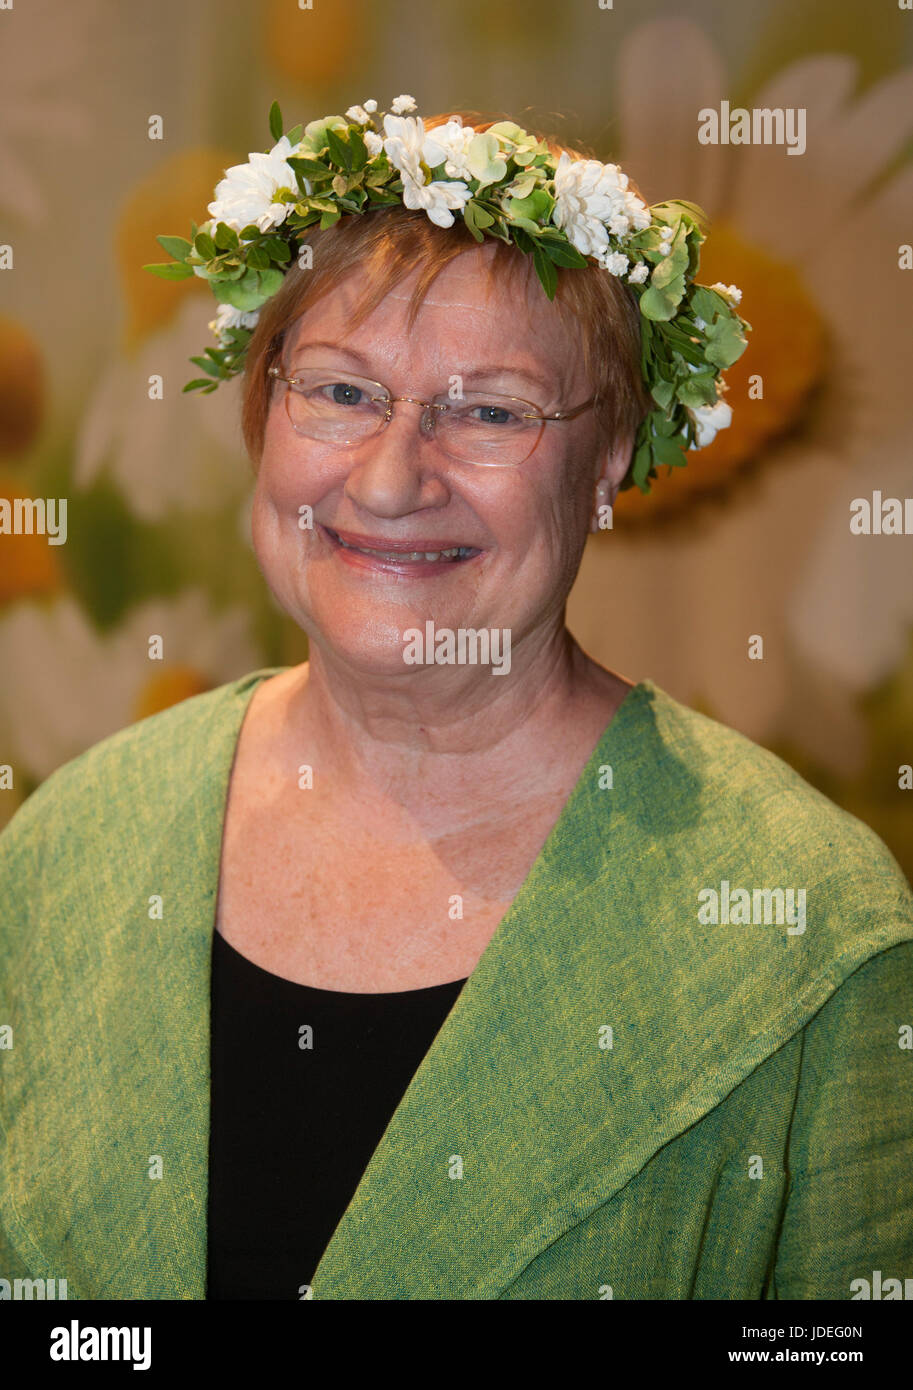 TARJA HALONEN former Finish president with flower ring on the head 2017 - Stock Image